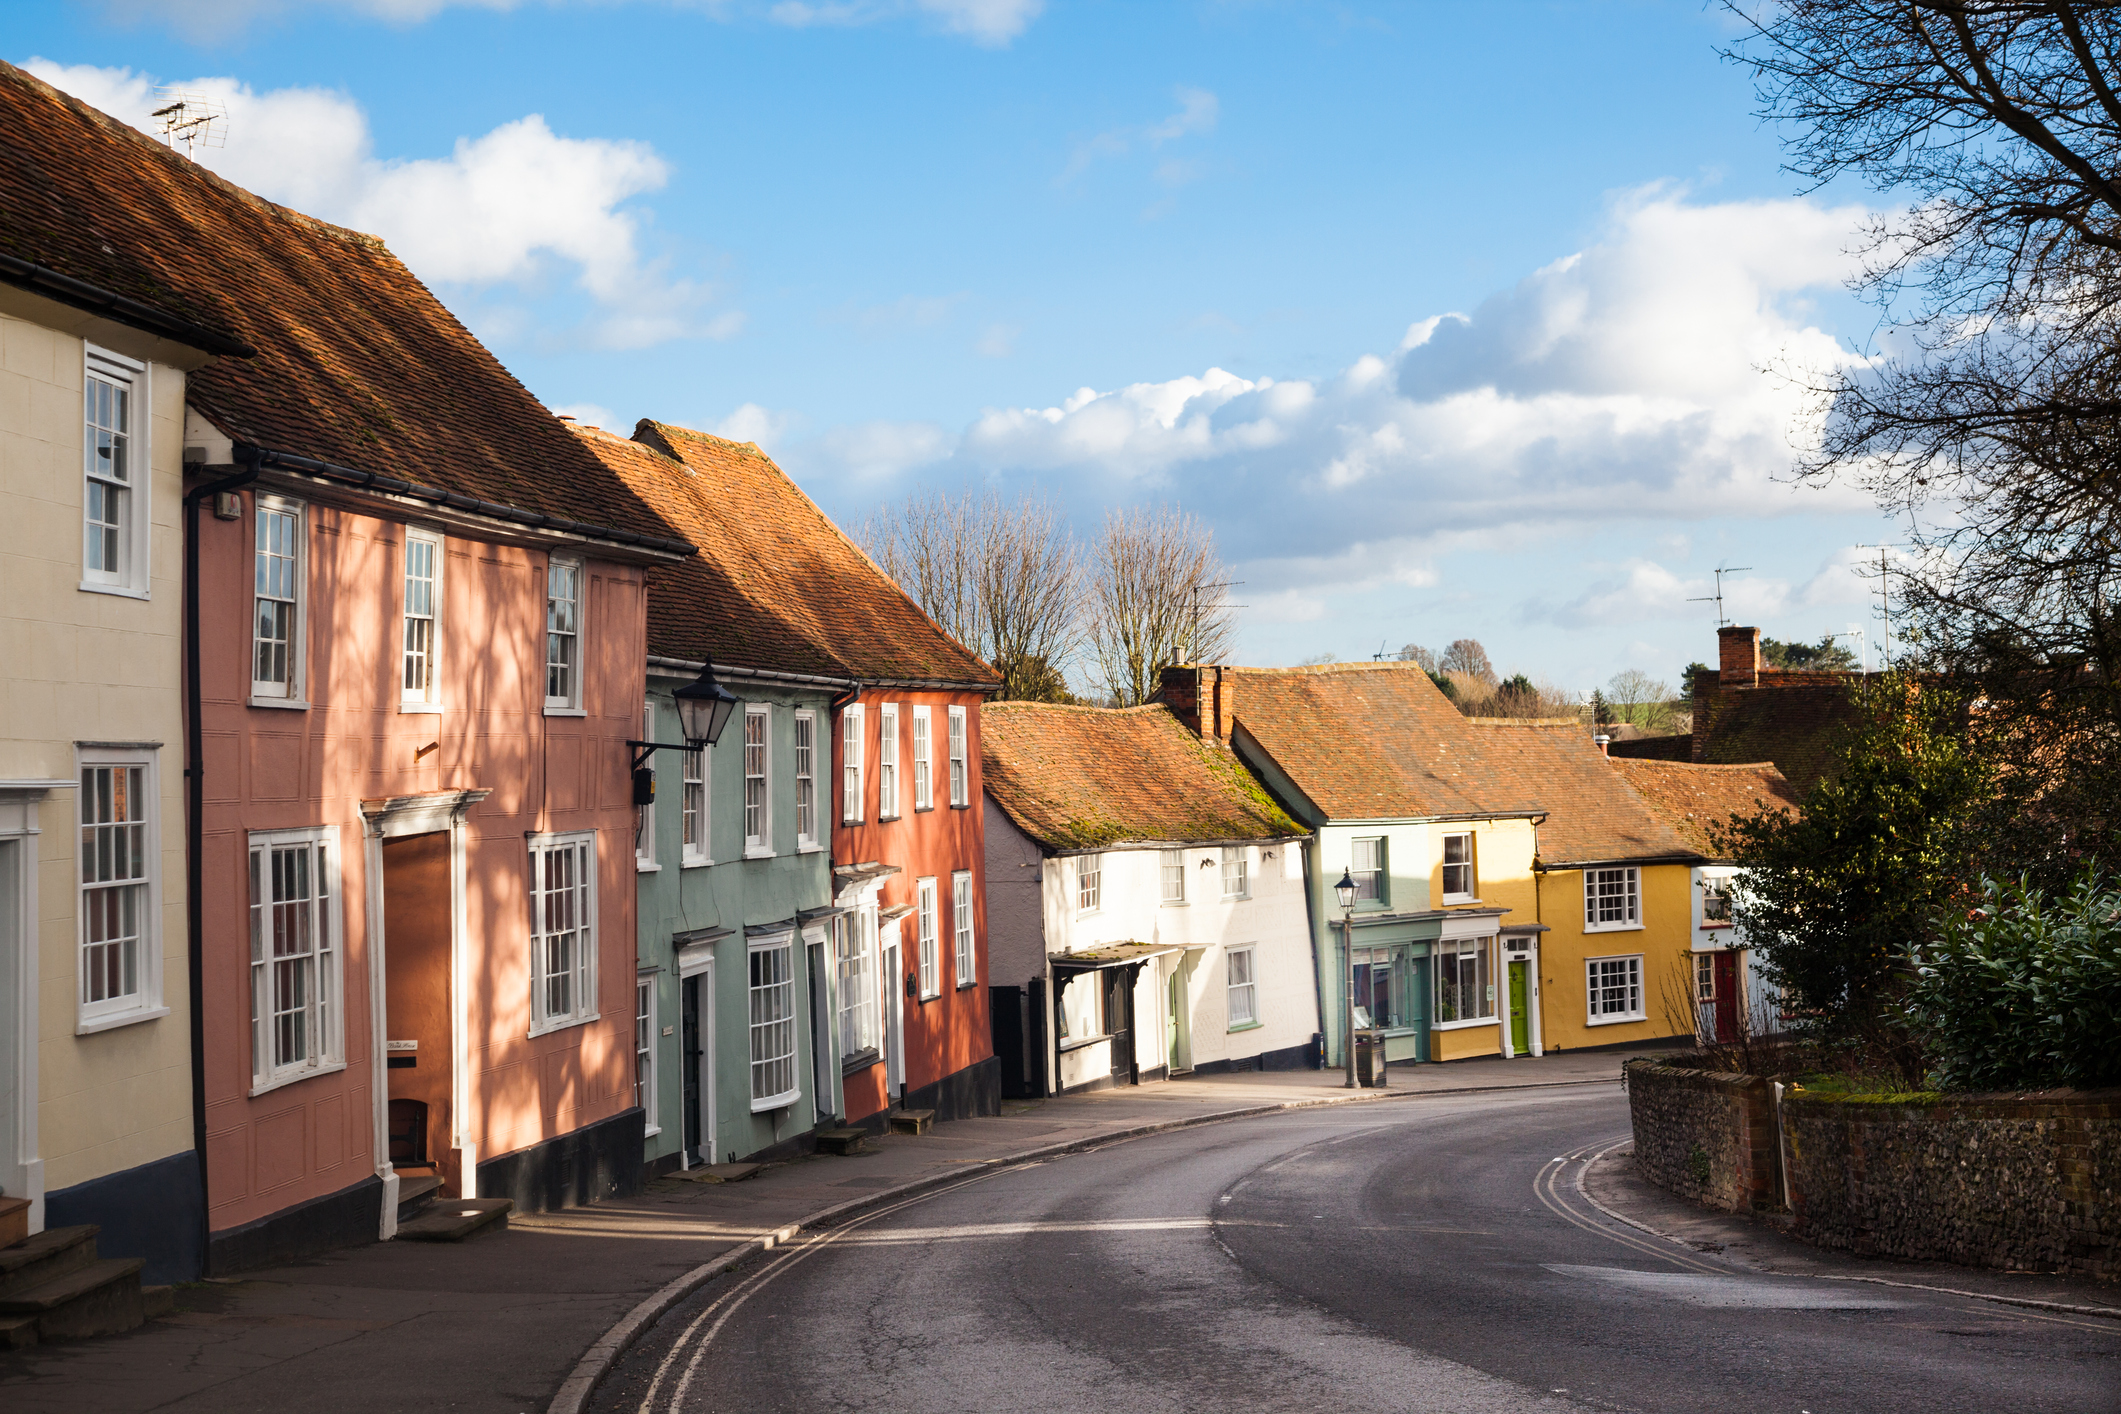 1855, 1855, quiet essex village street and houses in winter sun, Home-Vs.-2nd-Home-Insurance-Differences-and-Similarities.jpg, 2192883, https://www.fivewaysinsurance.co.uk/wp-content/uploads/2019/06/Home-Vs.-2nd-Home-Insurance-Differences-and-Similarities.jpg, https://www.fivewaysinsurance.co.uk/2020/05/04/why-underinsurance-is-concerning-high-net-worth-individuals/quiet-essex-village-street-and-houses-in-winter-sun/, , 1, , quiet essex village street and houses in winter sun, quiet-essex-village-street-and-houses-in-winter-sun, inherit, 1854, 2019-06-03 15:51:04, 2019-06-03 15:51:04, 0, image/jpeg, image, jpeg, https://www.fivewaysinsurance.co.uk/wp-includes/images/media/default.png, 2121, 1414, Array